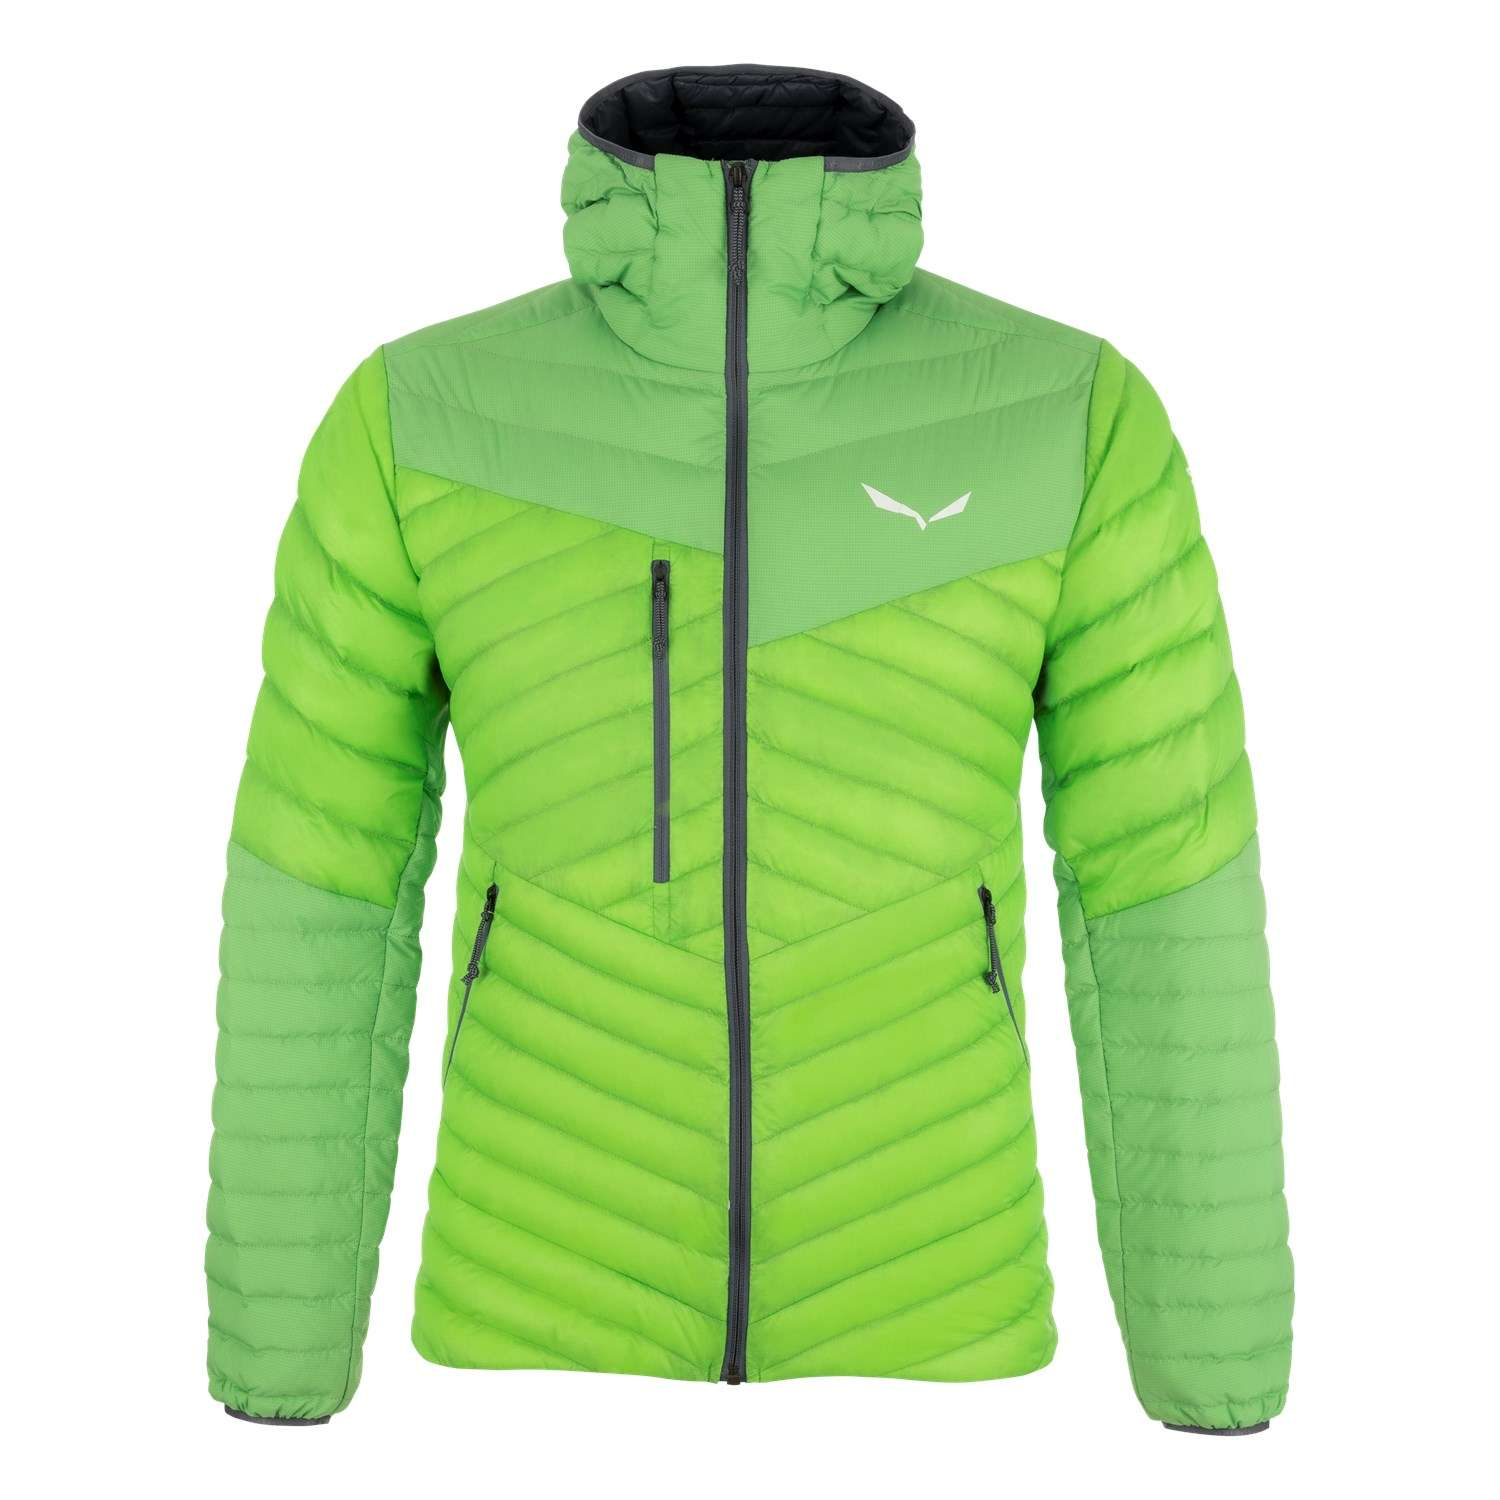 Details about  /Salewa Ortles Light 2 Down Mens Hooded Jacket Warm Lightweight Mountain Sports show original title